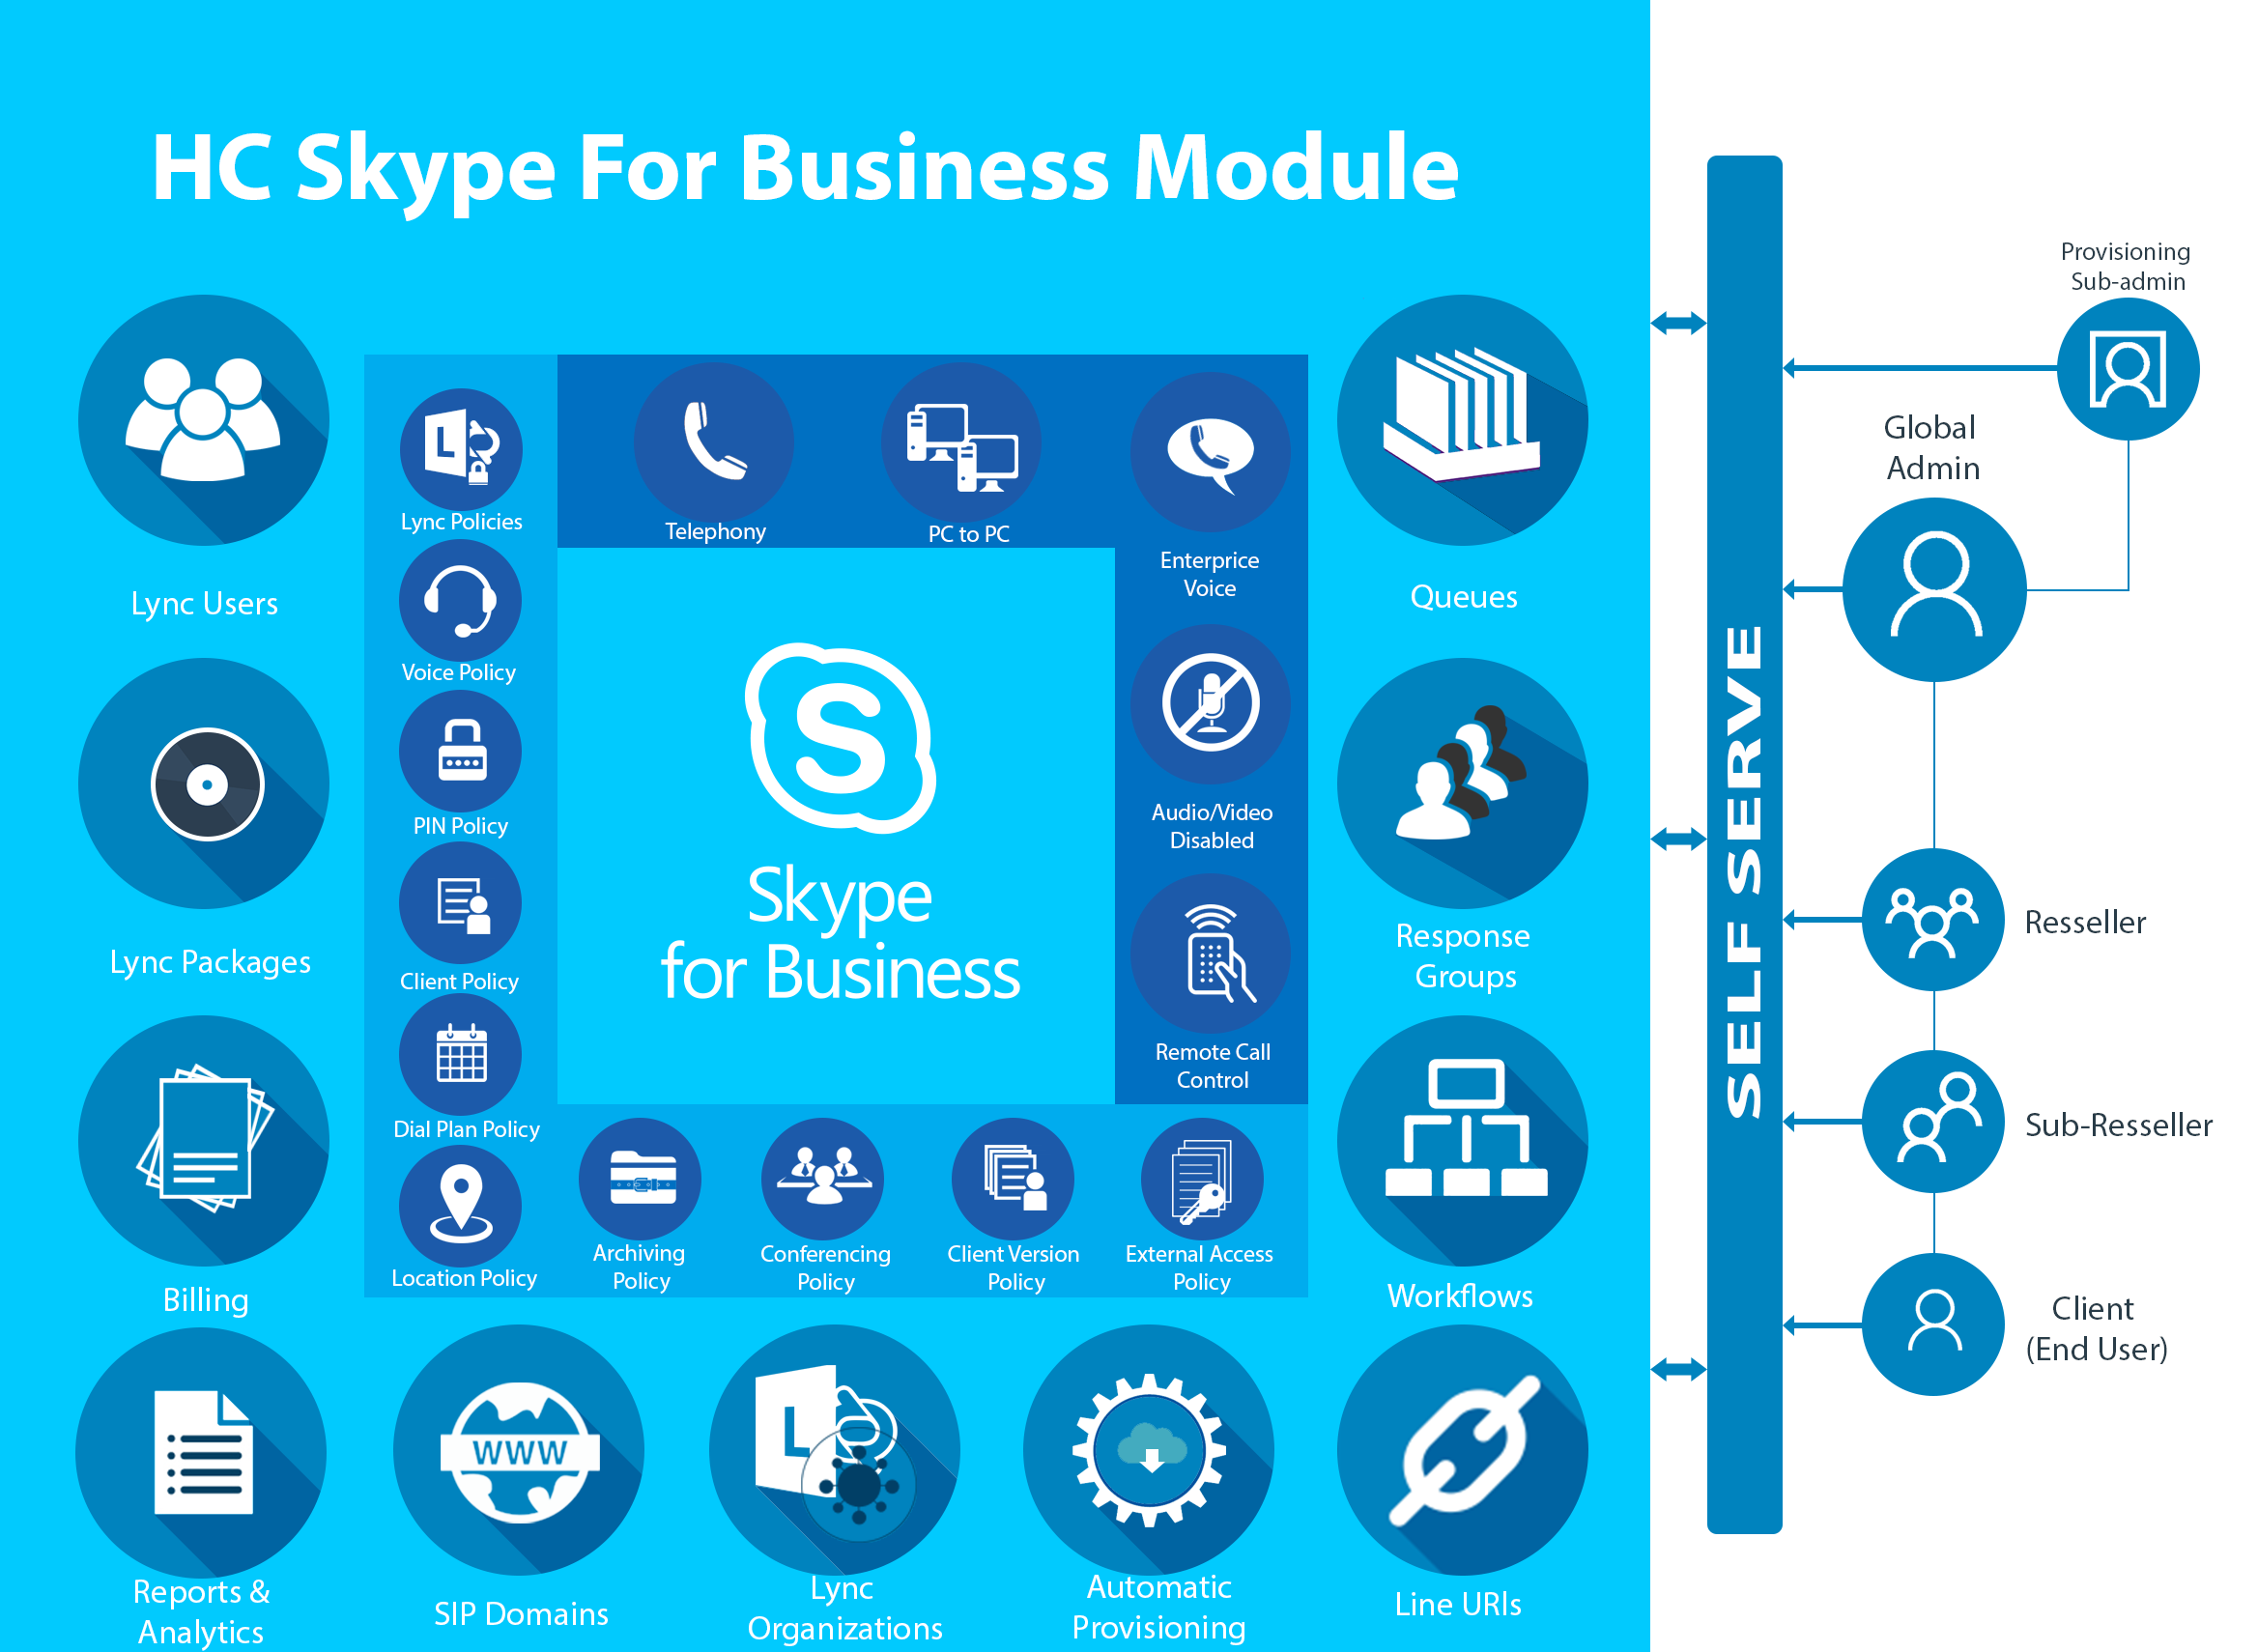 HC Hosted Skype for Business Module - Skype for Business Control